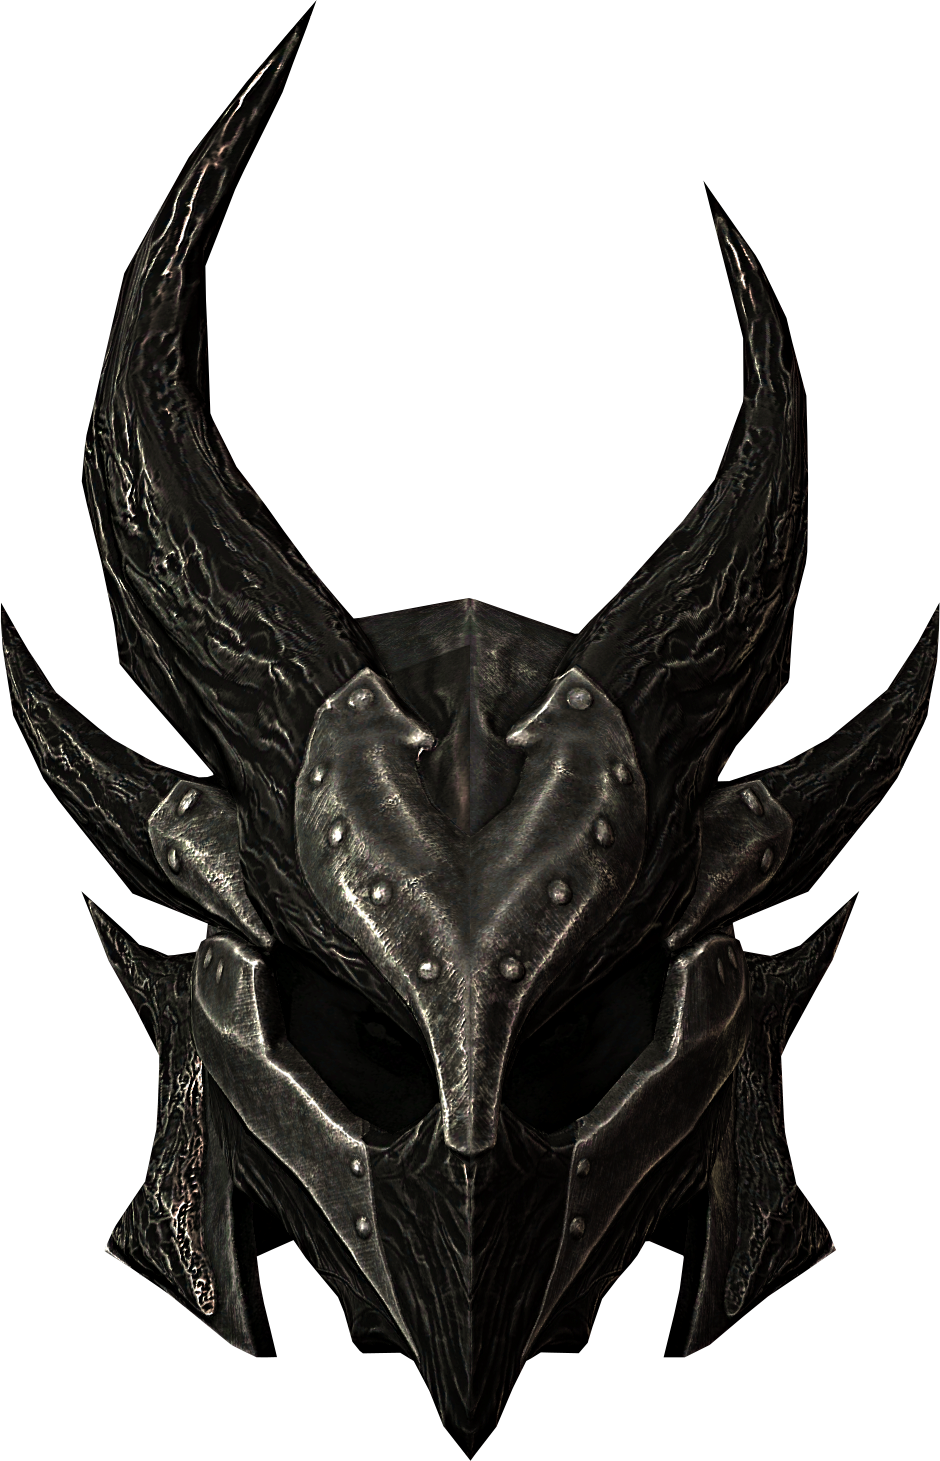 Download Mod The Sims Skyrim Dragon Armor Helmet Full Size Png Image Pngkit Showdown between the two best unechanted heavy armours in the game, daedric vs dragon plate. the sims skyrim dragon armor helmet